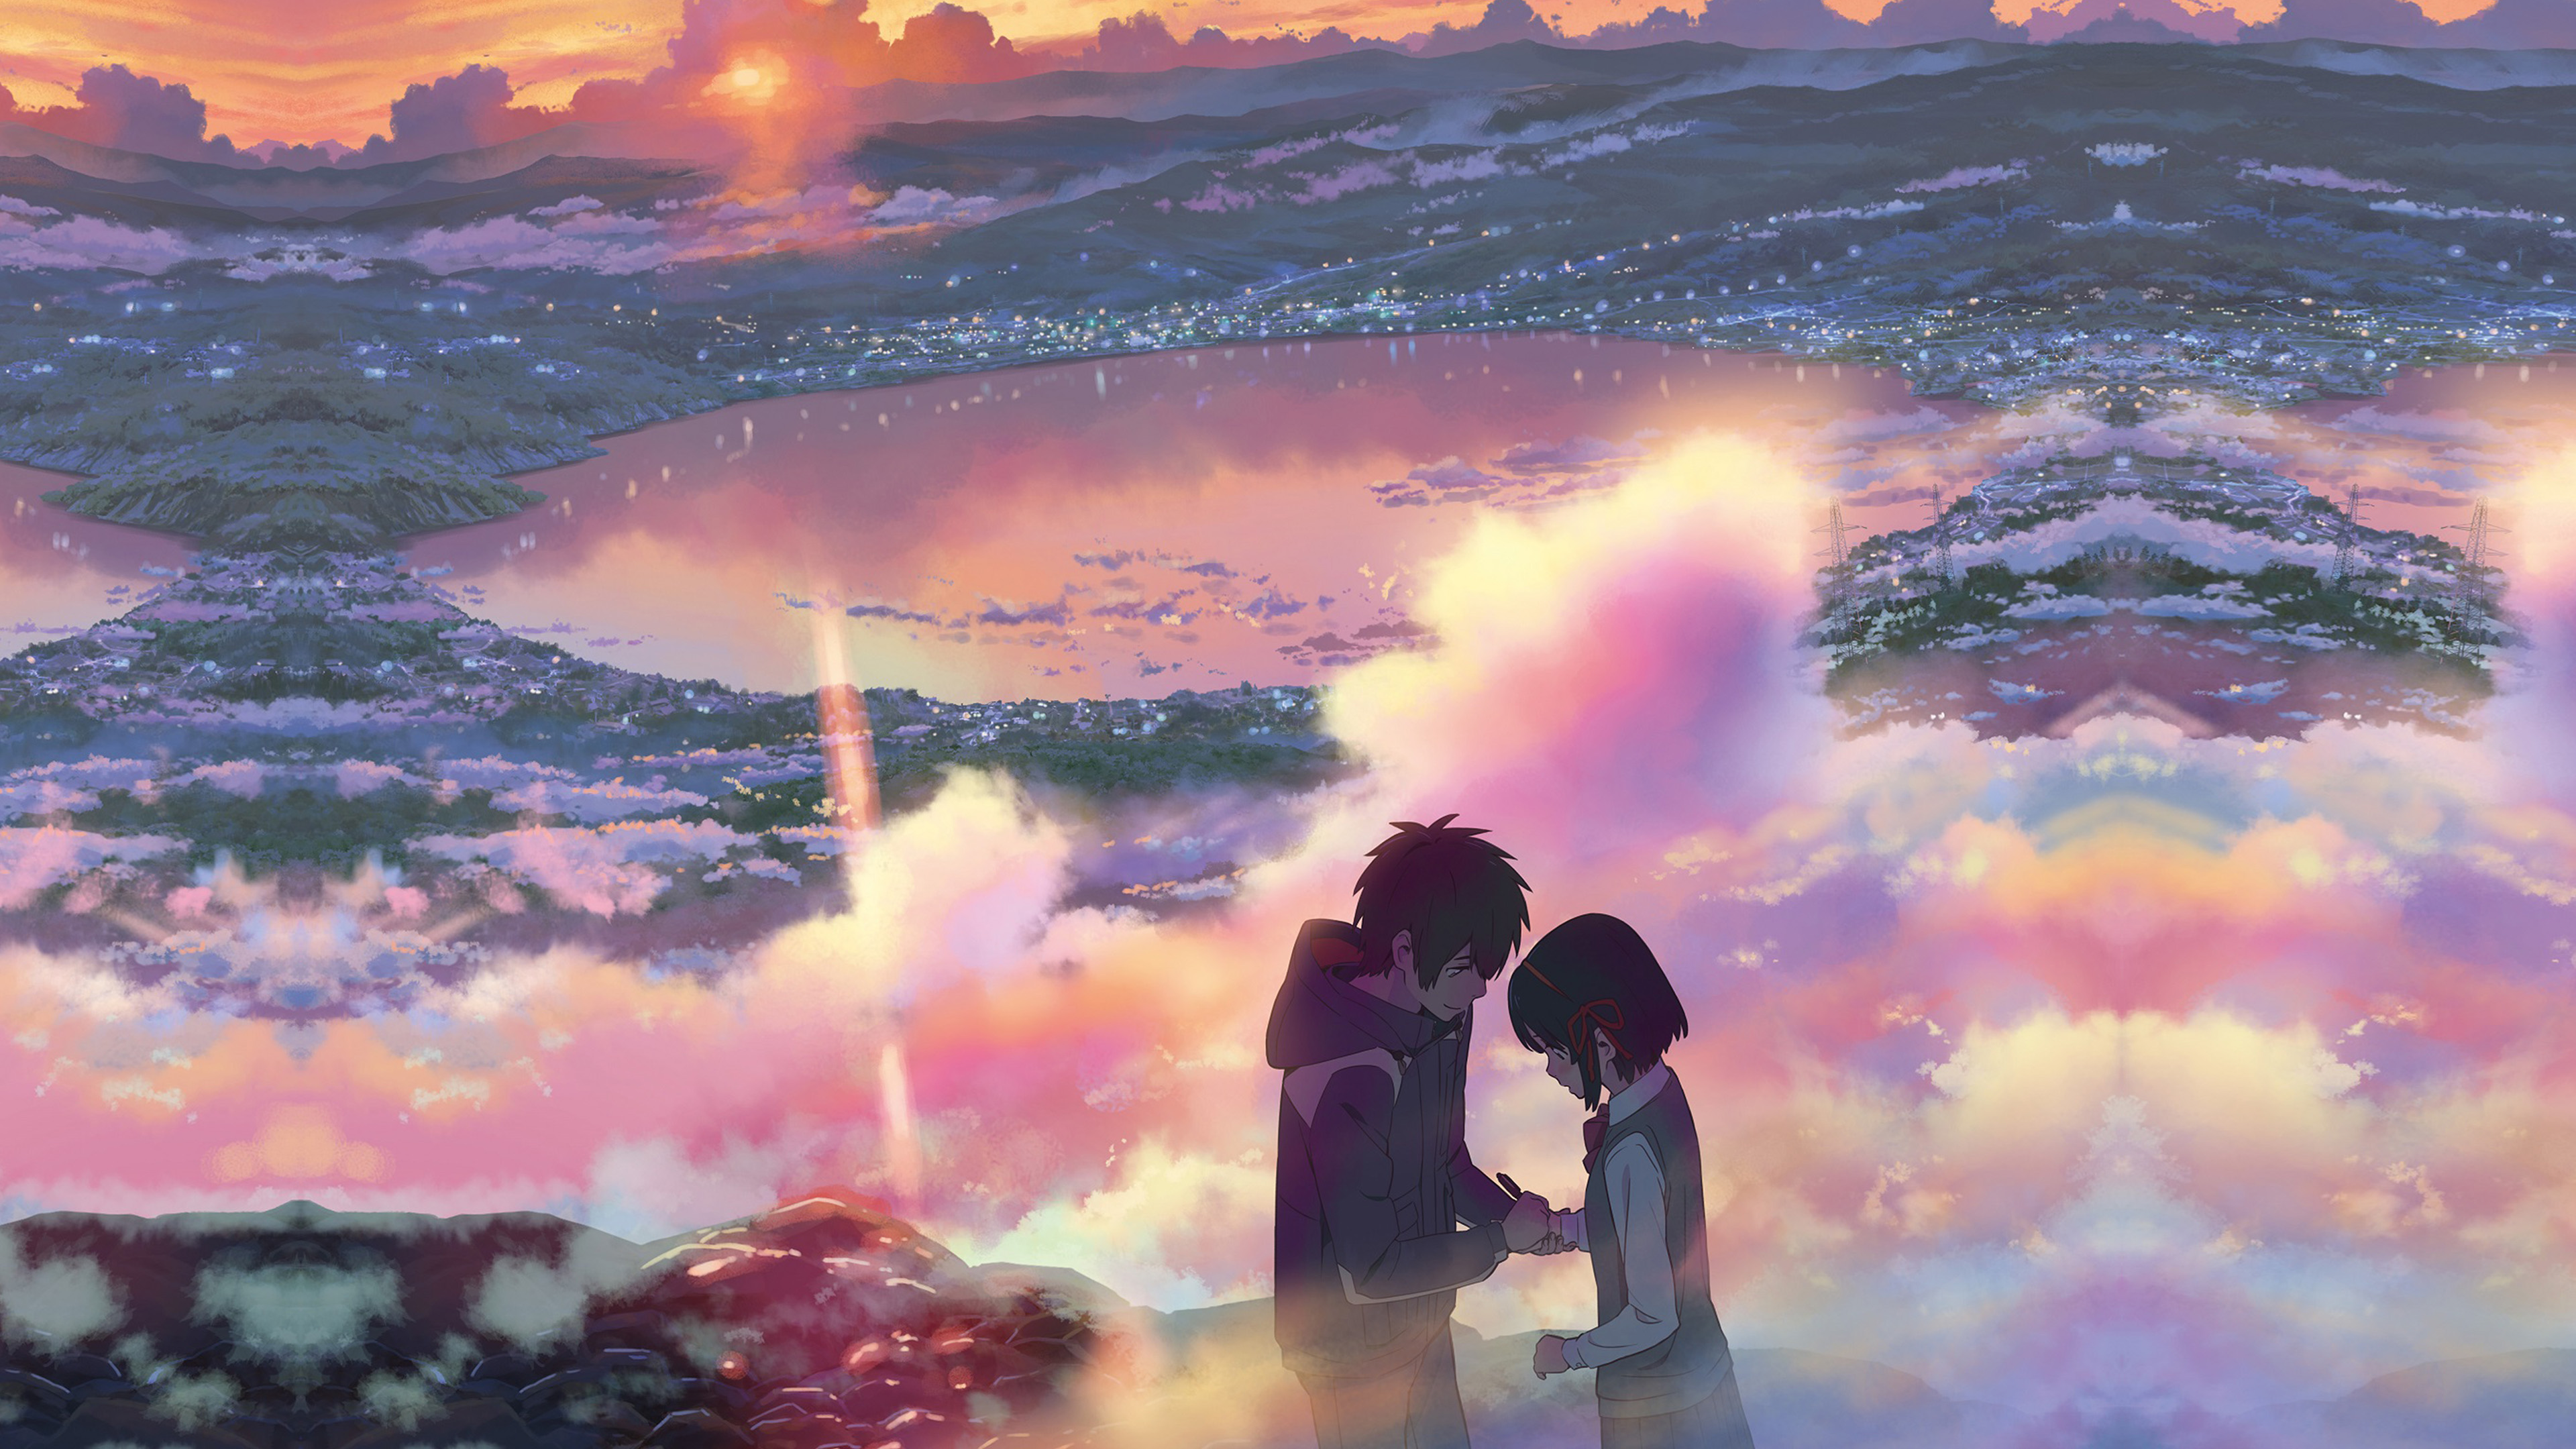 Wallpaper For Desktop Laptop Aw26 Yourname Anime Filme Illustration Art